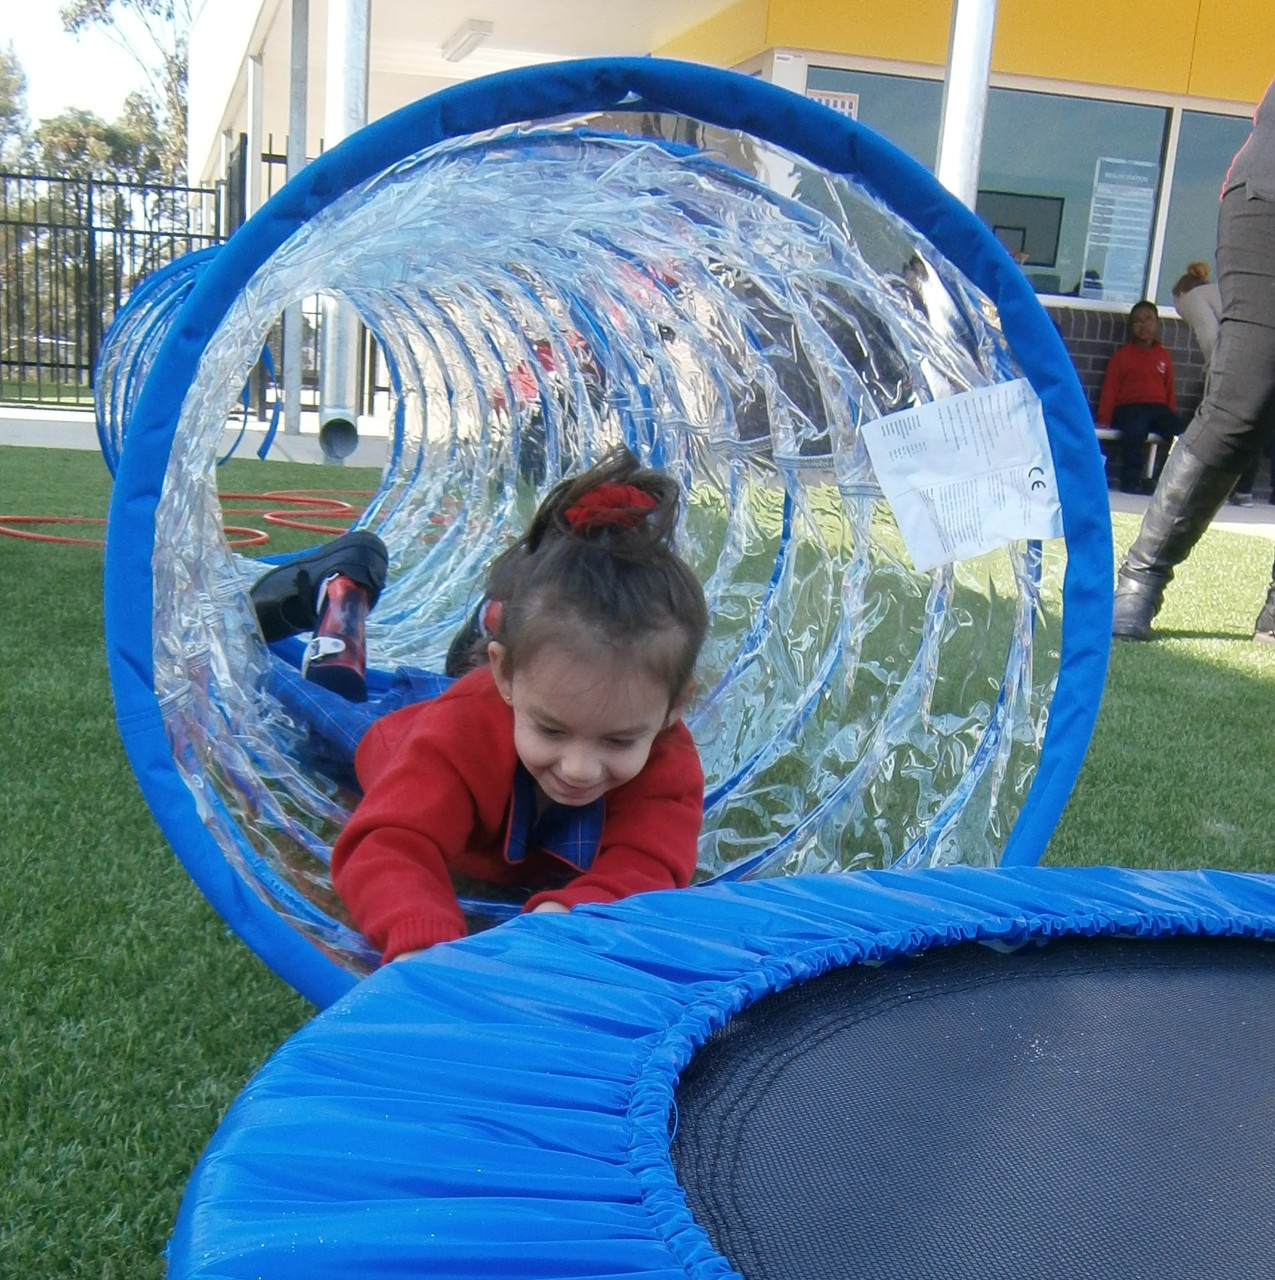 student playing in blue tube